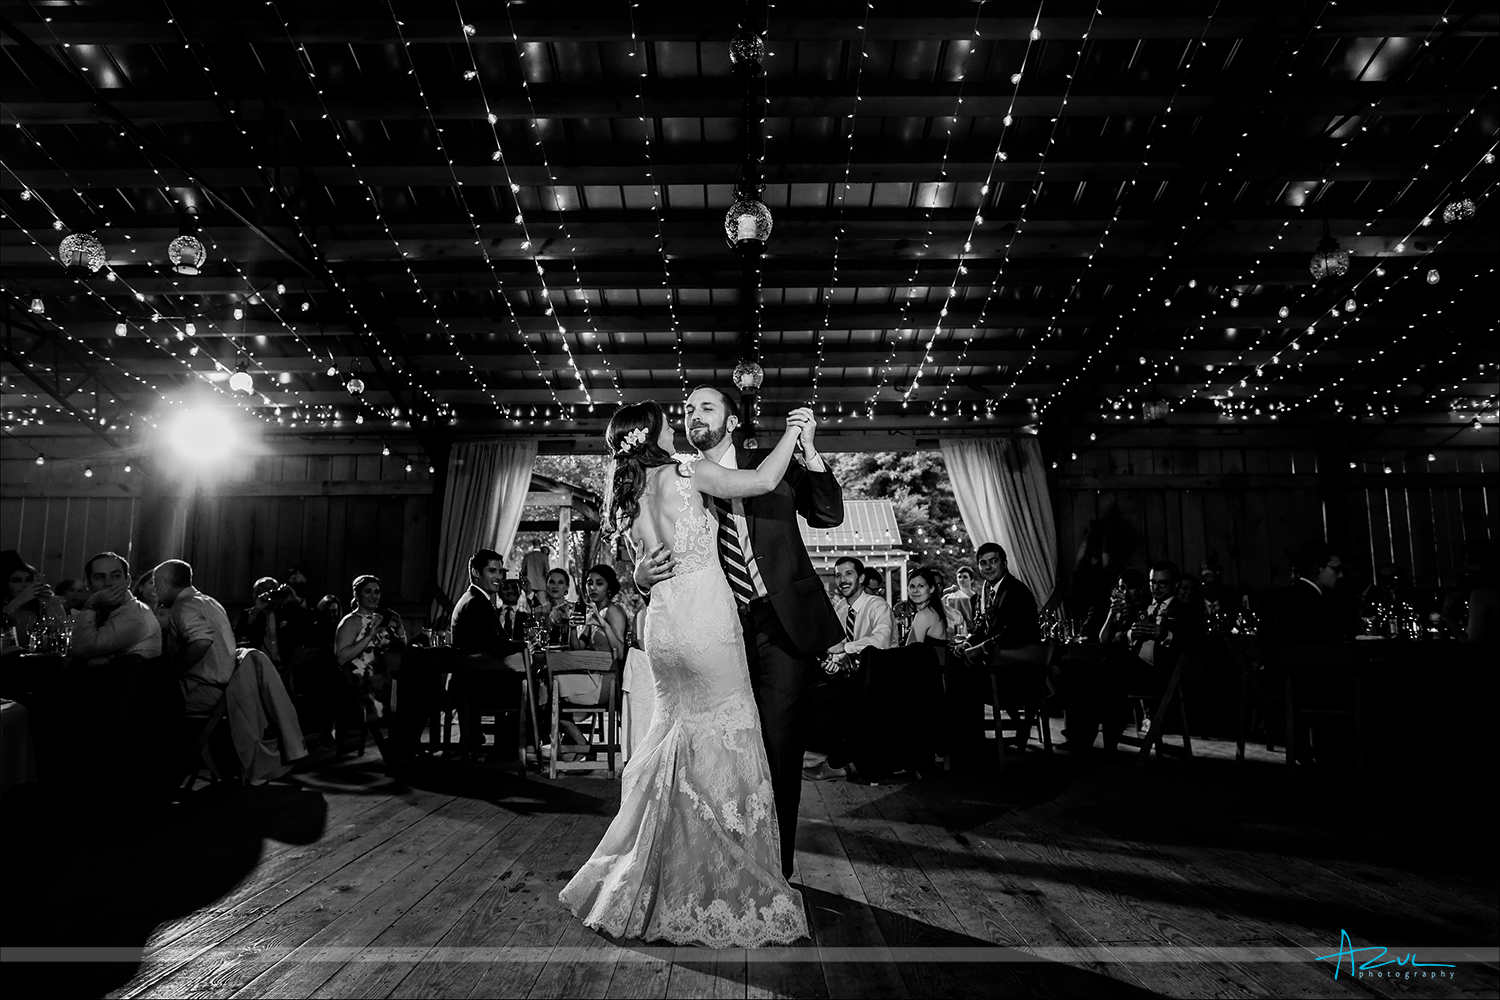 Photography of the groom taking the lead of the bride in their first dance under the twinkle lights in Chapel Hill, North Carolina